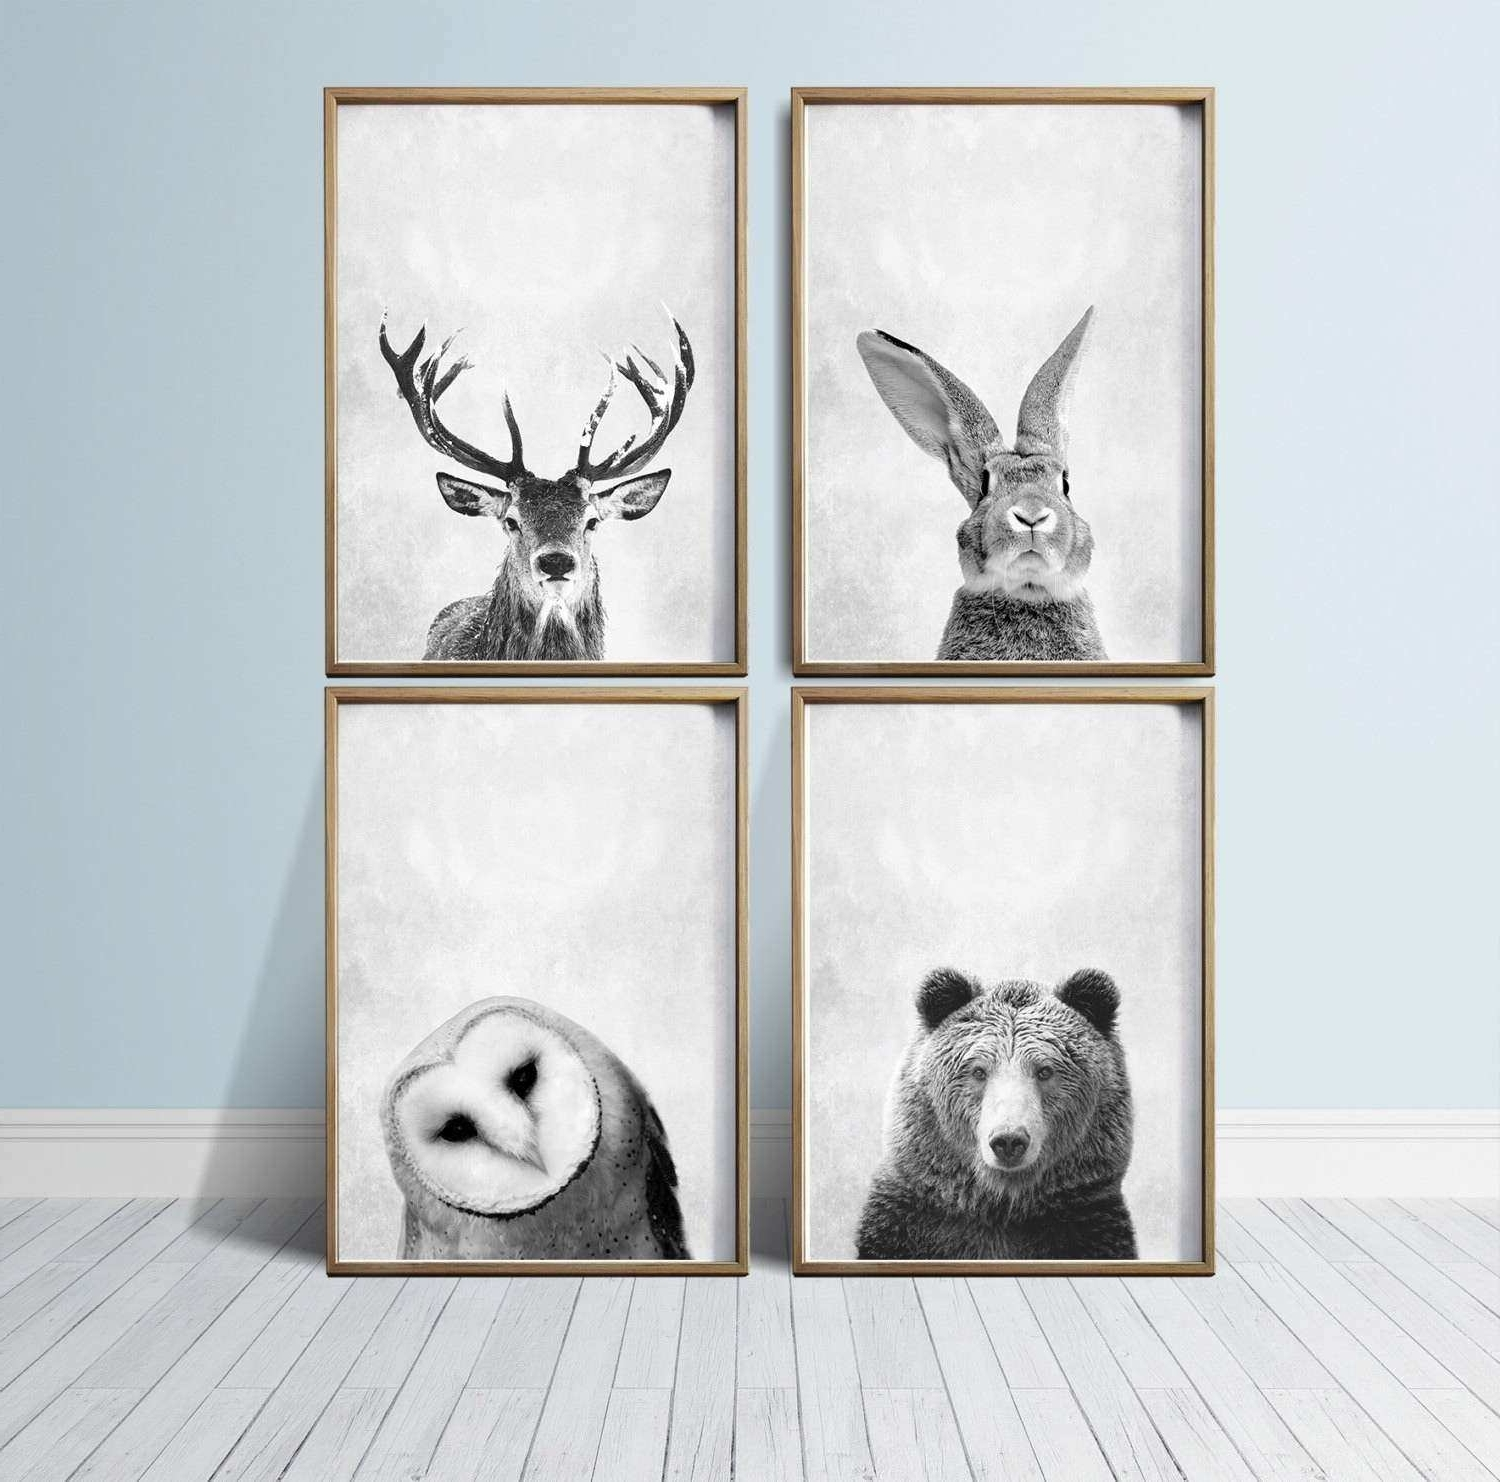 Unique Wall Art Prints Luxury Nursery Wall Art Animal Print Art Intended For Newest Woodland Nursery Wall Art (View 15 of 15)